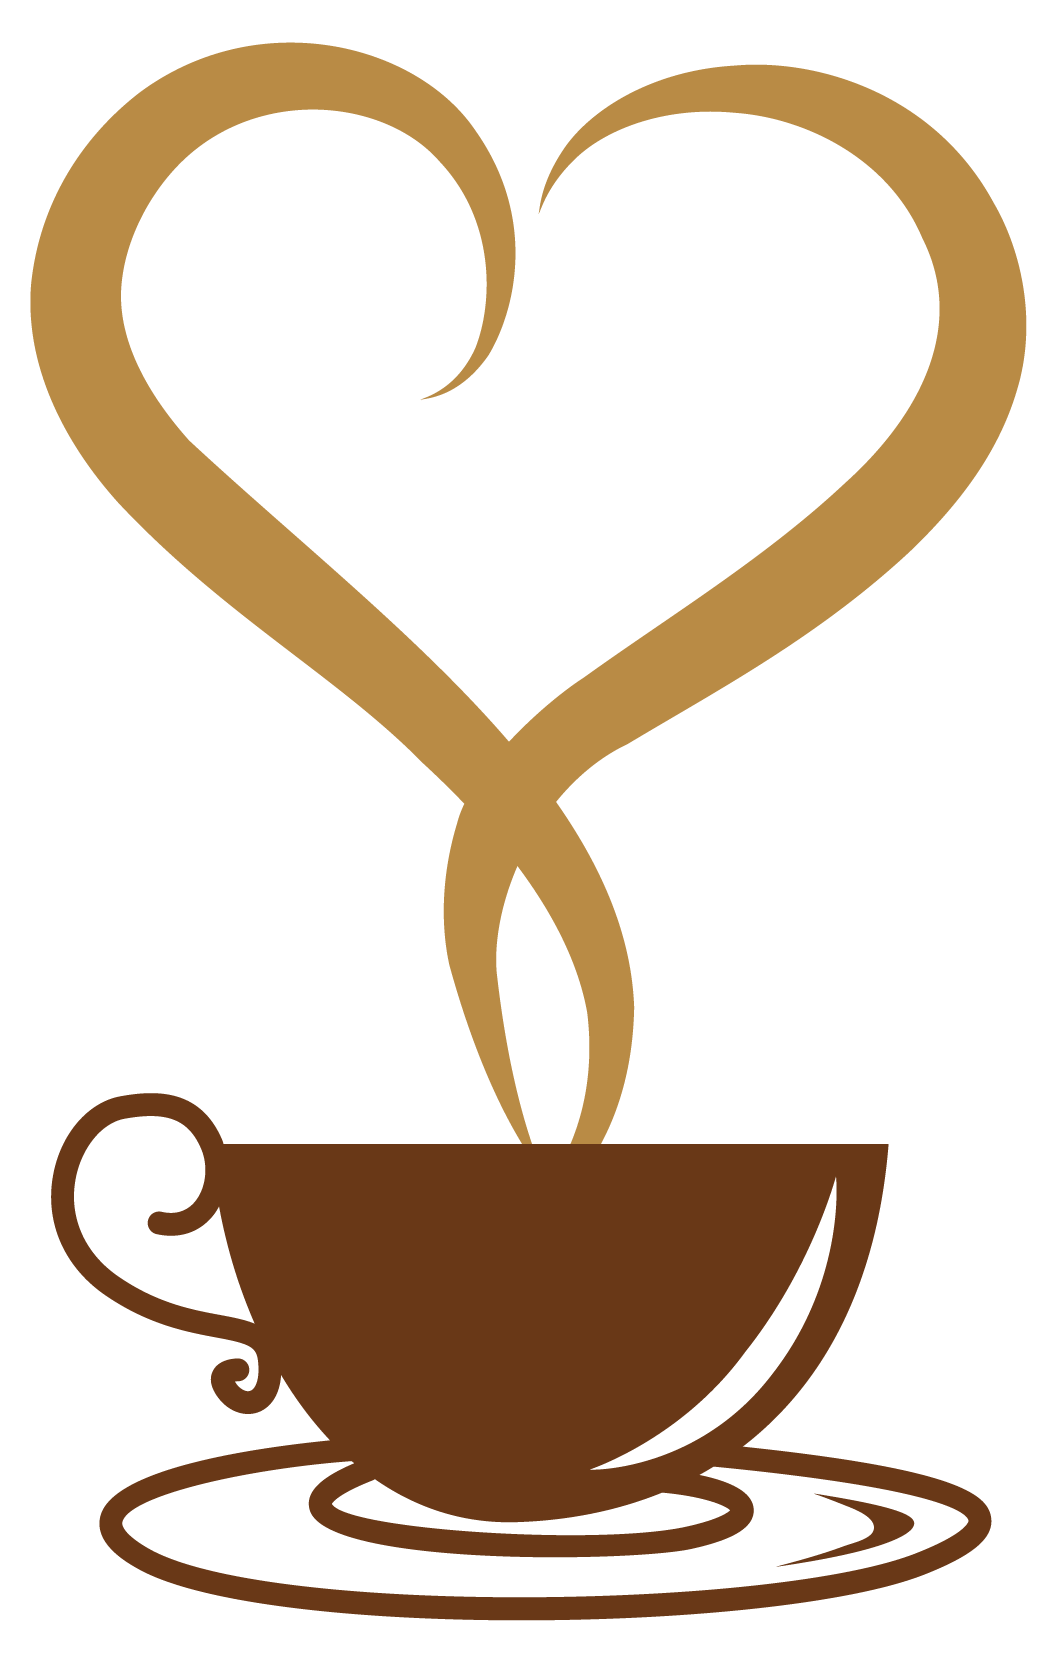 Clock clipart coffee. Cup starbucks top pictures